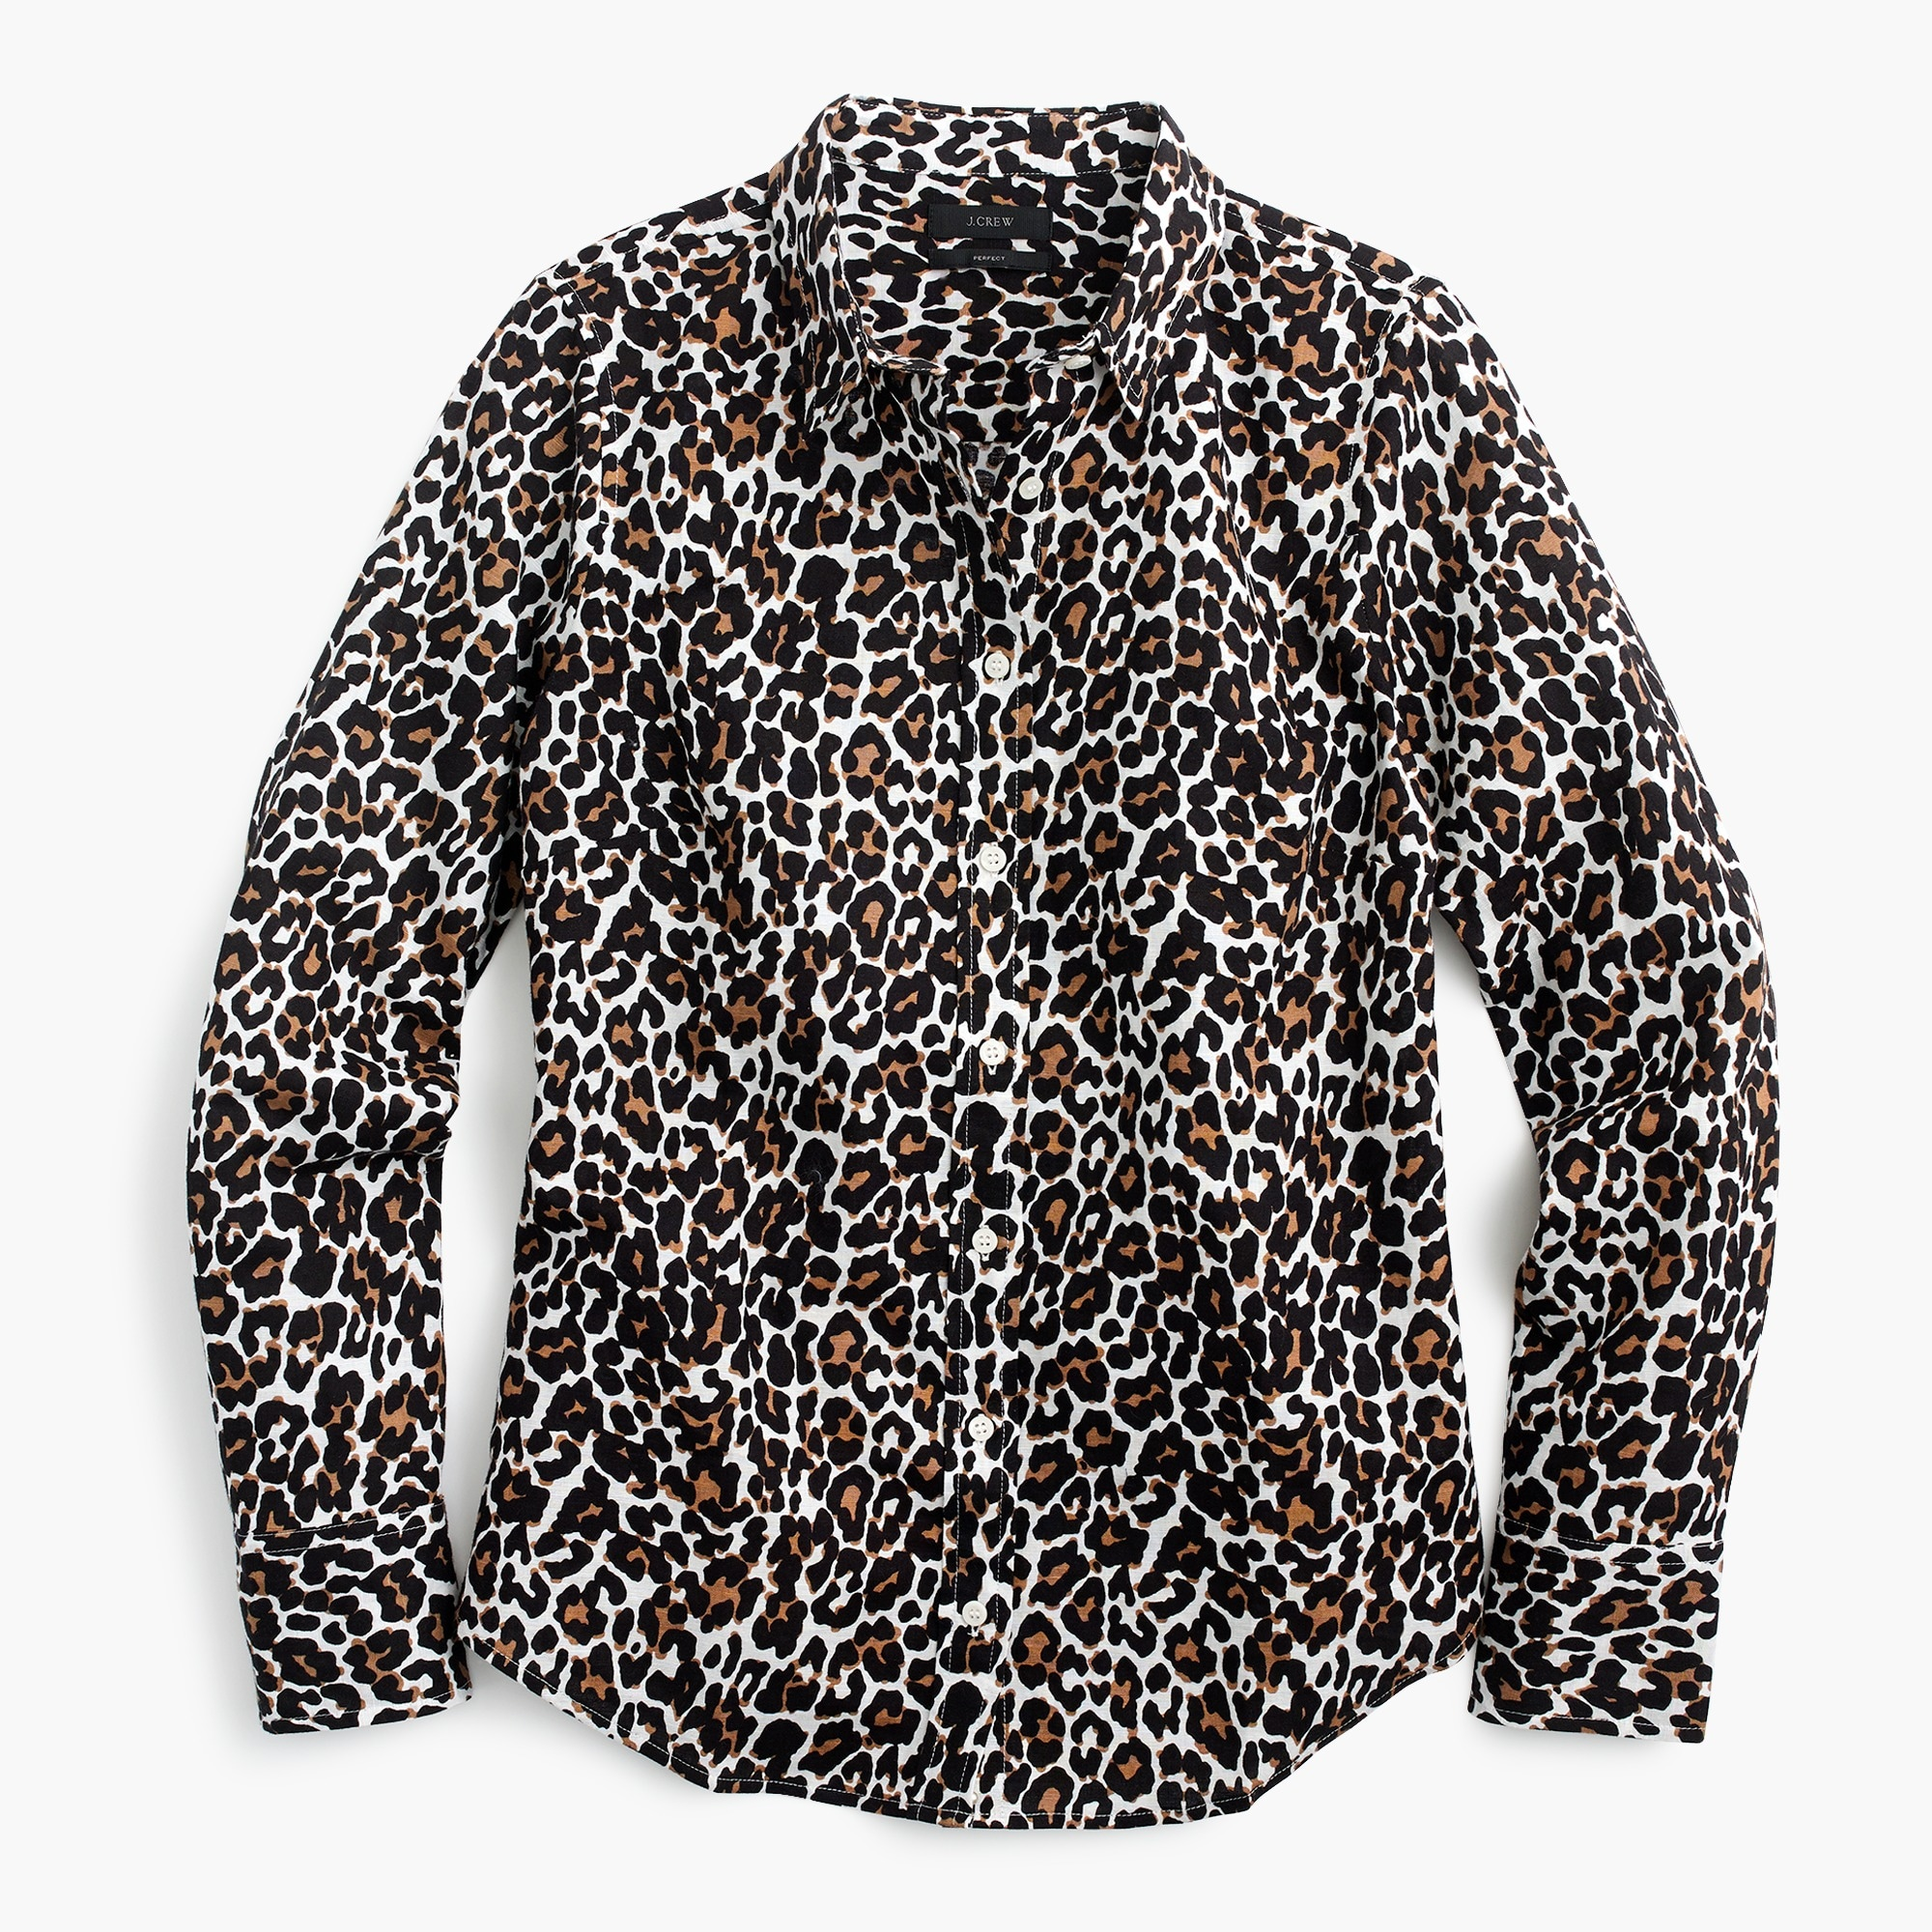 Tall slim perfect shirt in leopard print